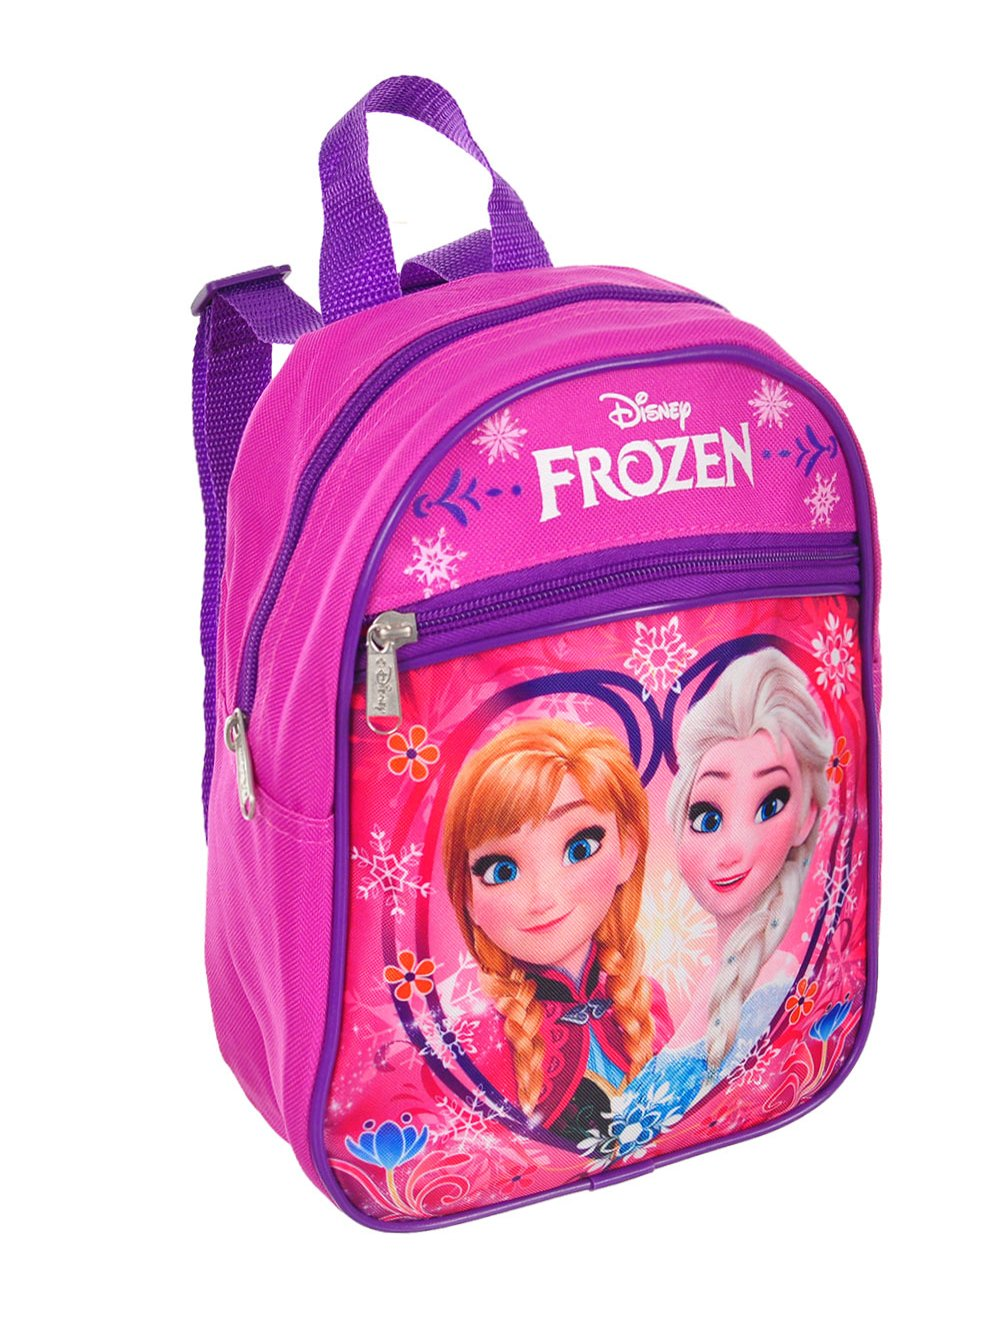 Disney Frozen Mini Backpack featuring Anna & Elsa